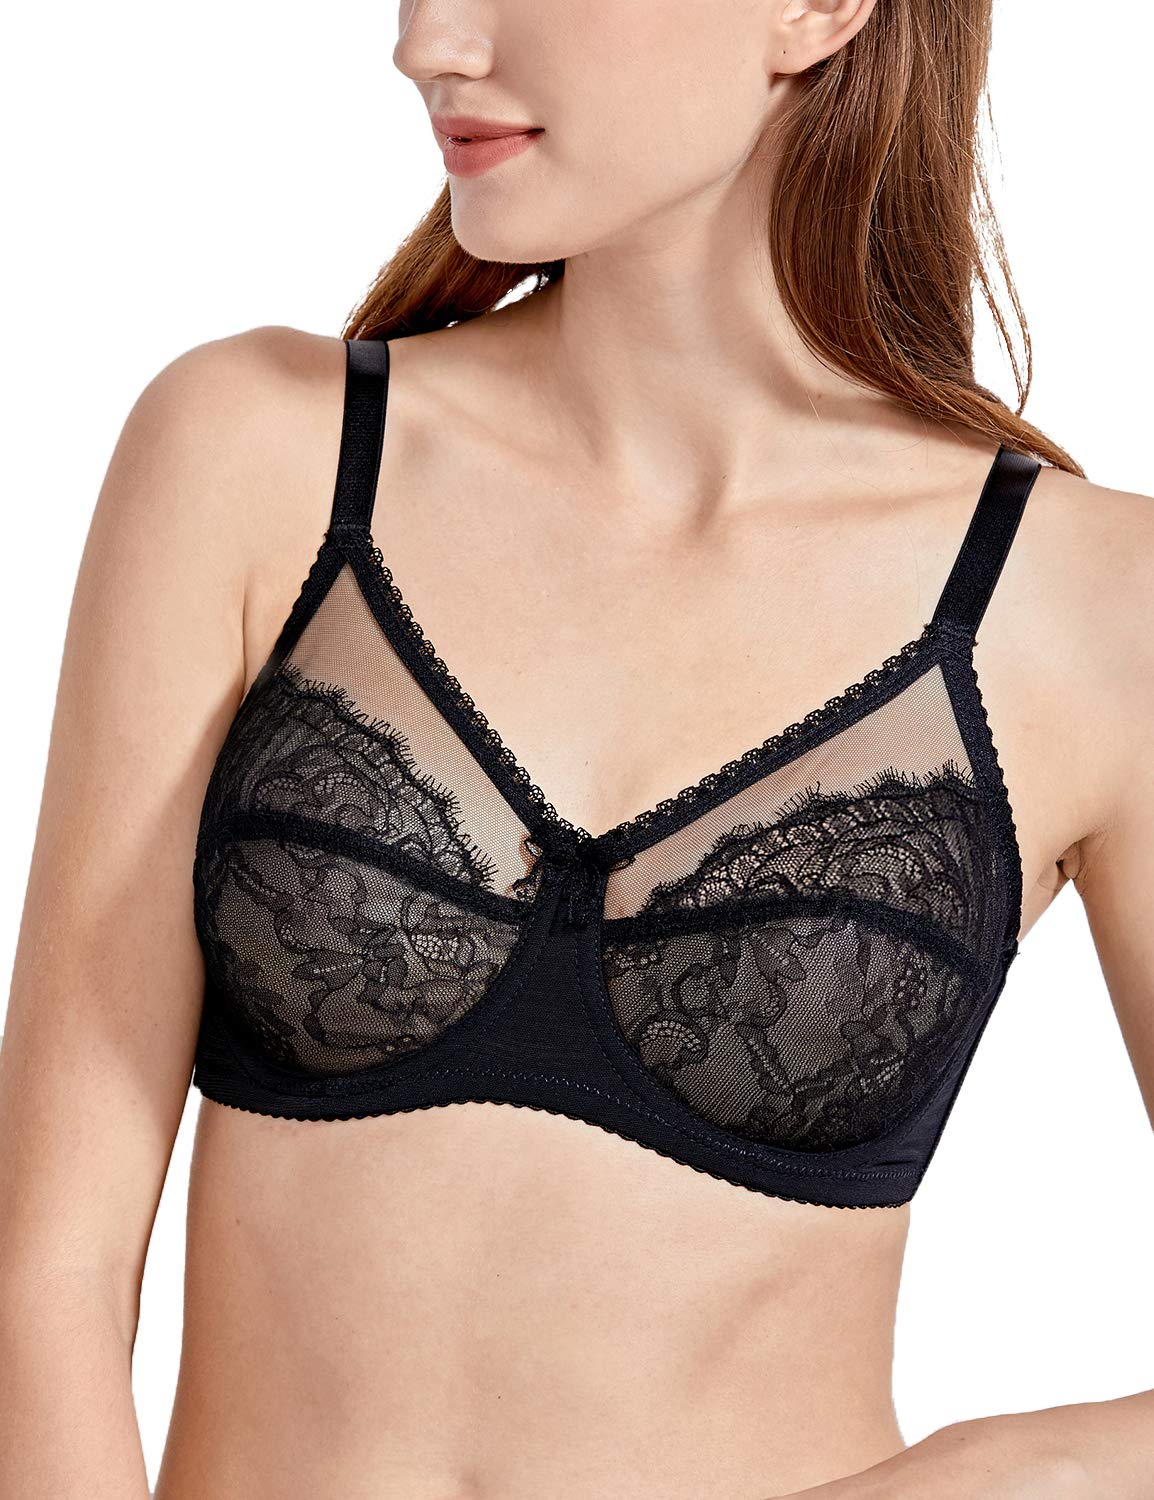 7d260690c0 DELIMIRA Women s Sheer Lace Unlined Full Cup Plus Size Underwire Bra Full  Figure Bra Black 44D